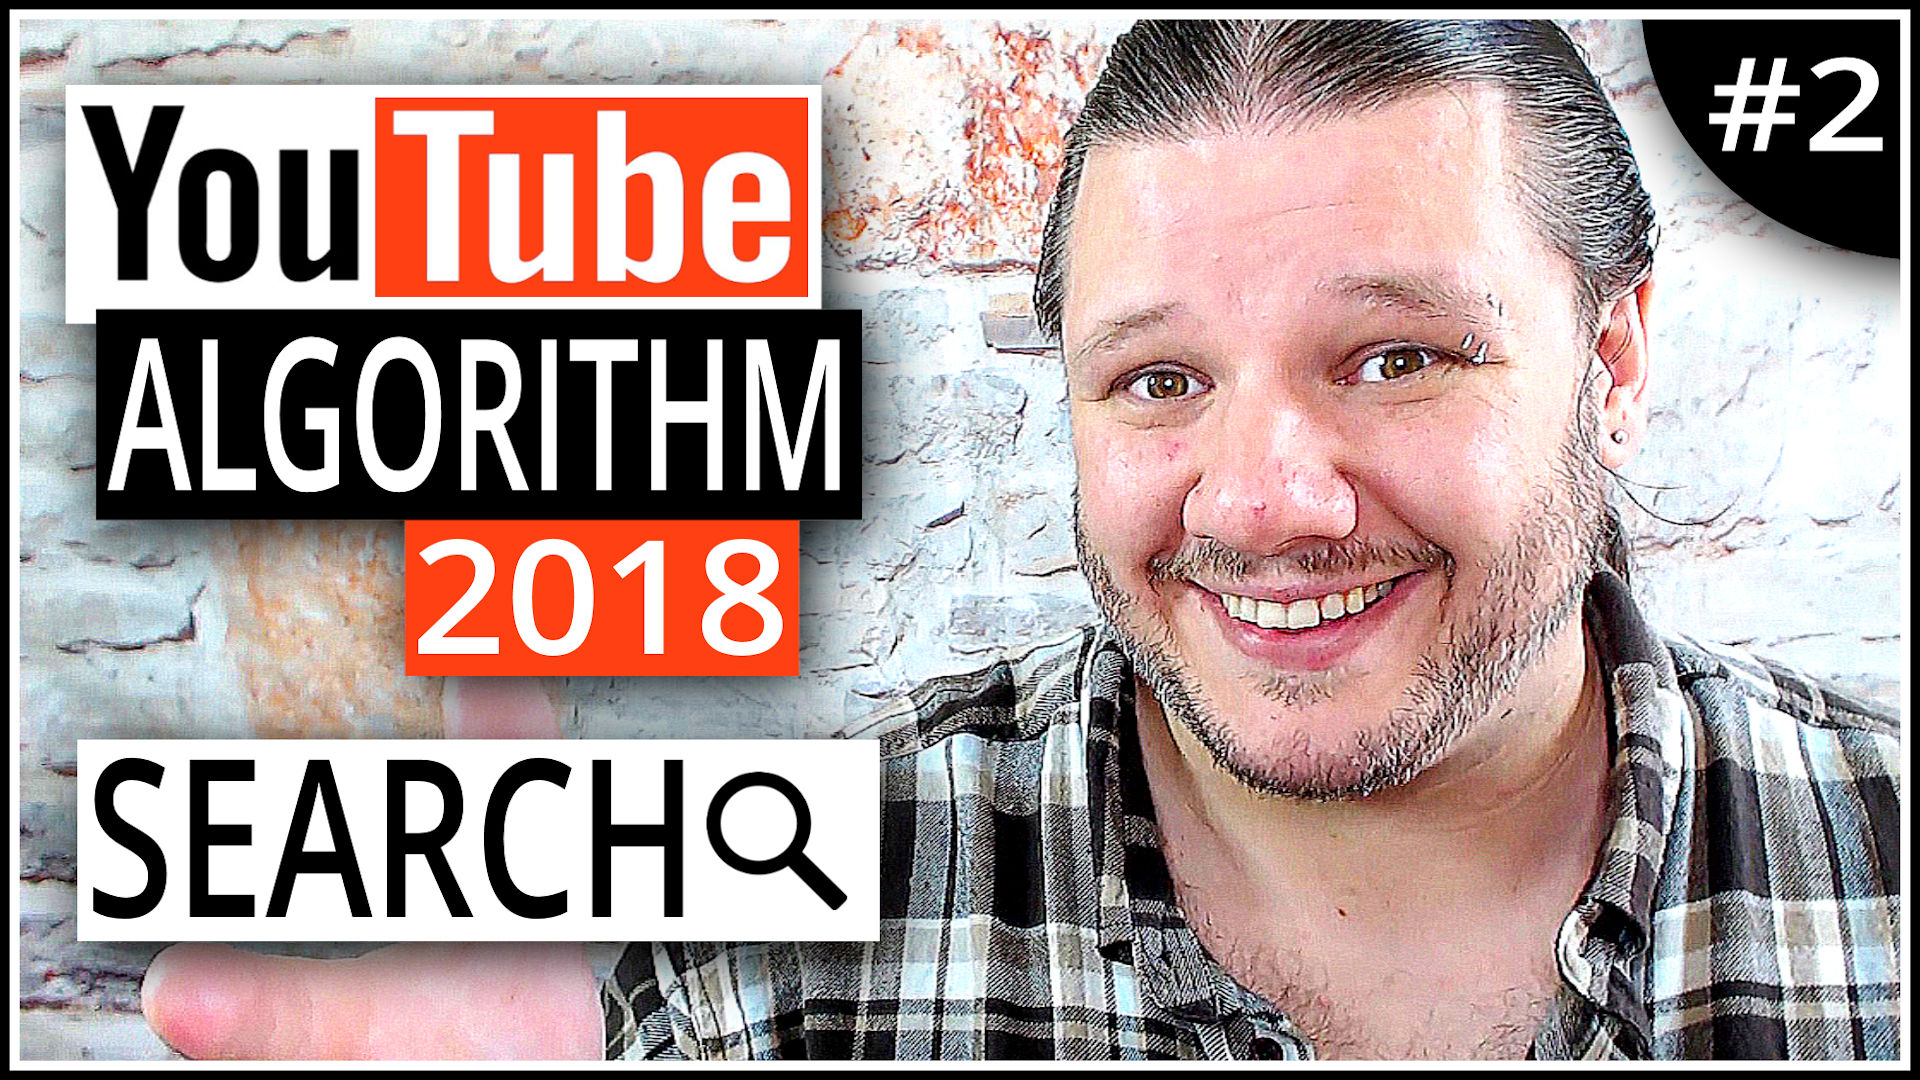 alan spicer,alanspicer,youtube tips,youtube tricks,asyt,youtube tips 2018,youtube algorithm 2018,youtube algorithm,youtube search algorithm,youtube search,search algorithm,video seo,keyword tagging,tags,seo,the youtube algorithm,2018,2018 youtube algorithm,algorithm,youtube,search,search rankings,youtube series,youtube algorithm playlist,YouTube Search Algorithm for 2018,youtube search and discovery,rank on youtube,youtube seo,how to rank on youtube